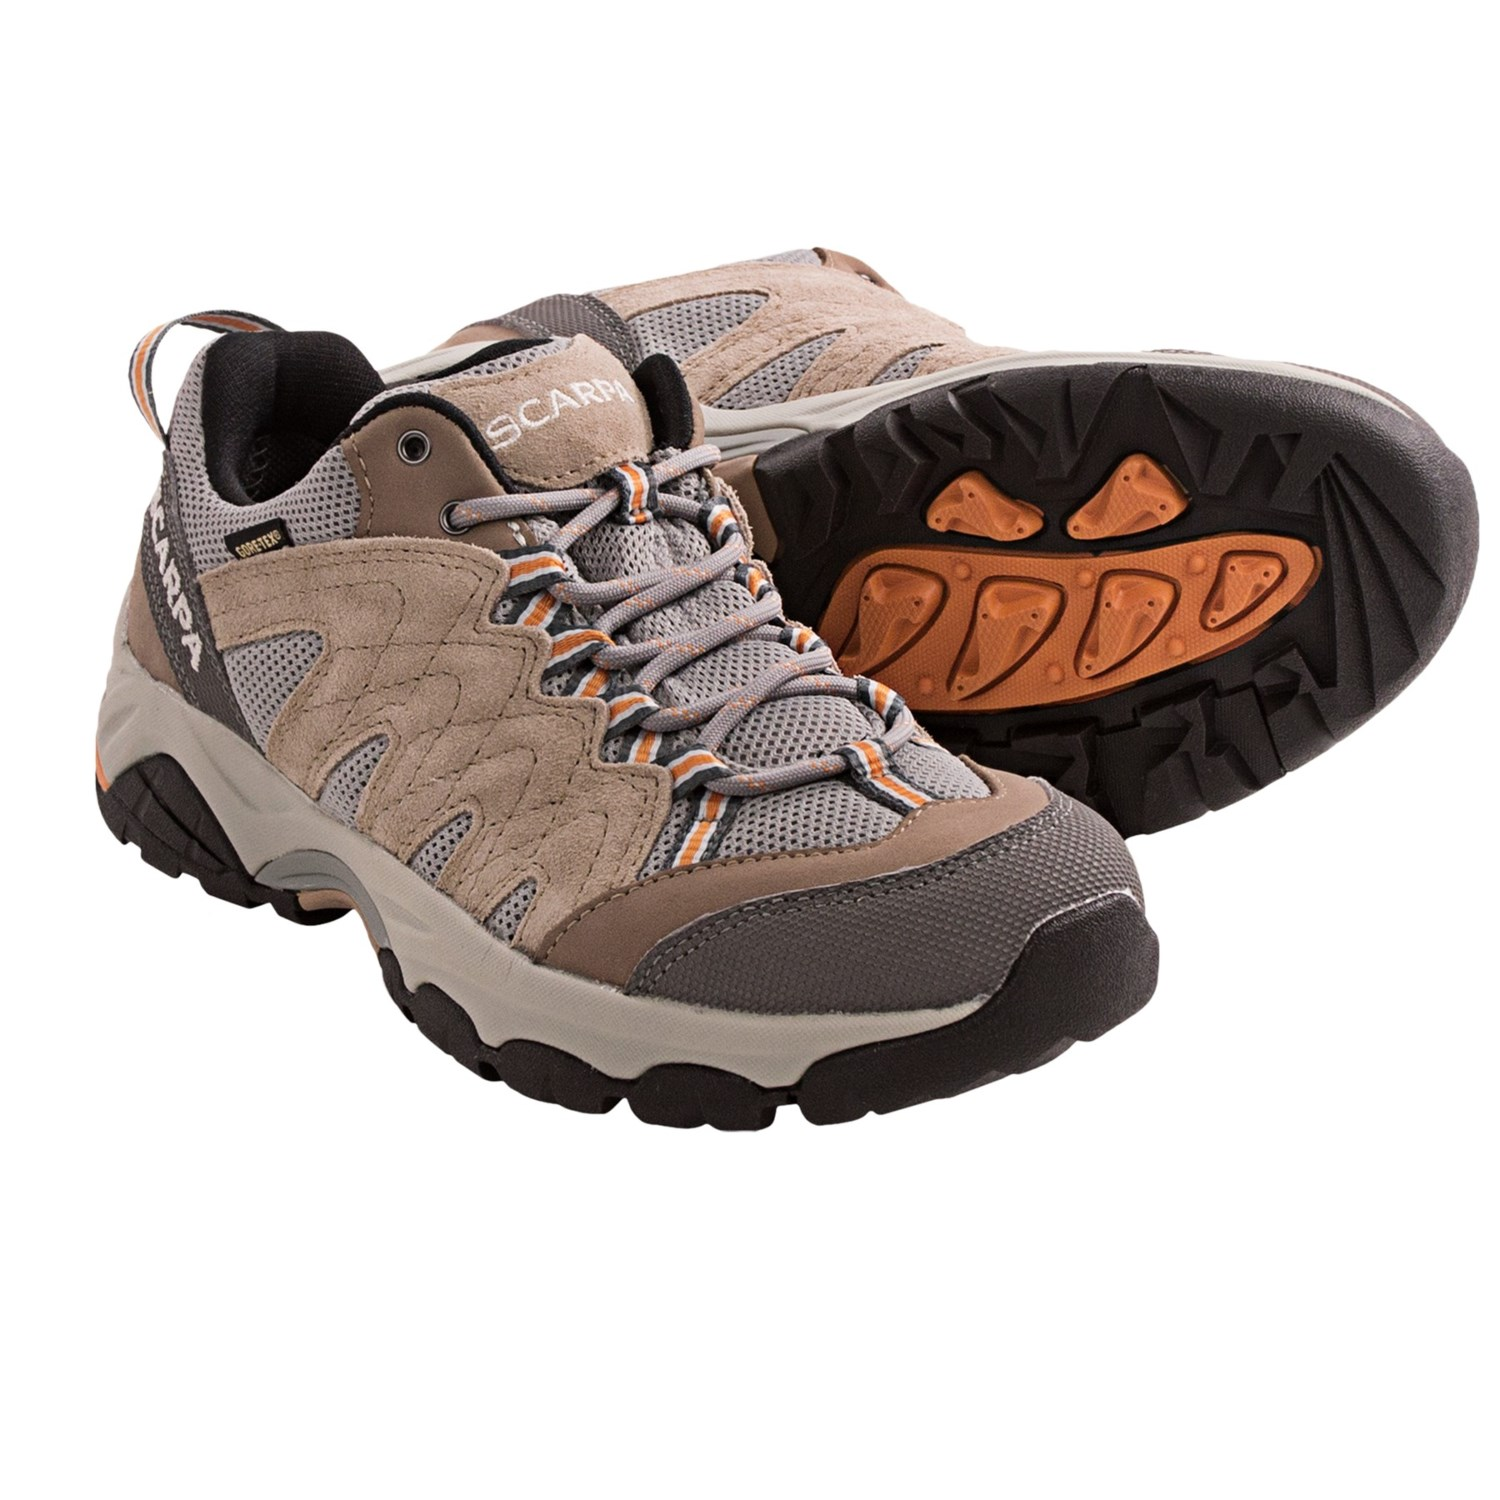 Scarpa Crux Approach Shoes (Women's) - Mountain Equipment Co-op. Free Shipping Available